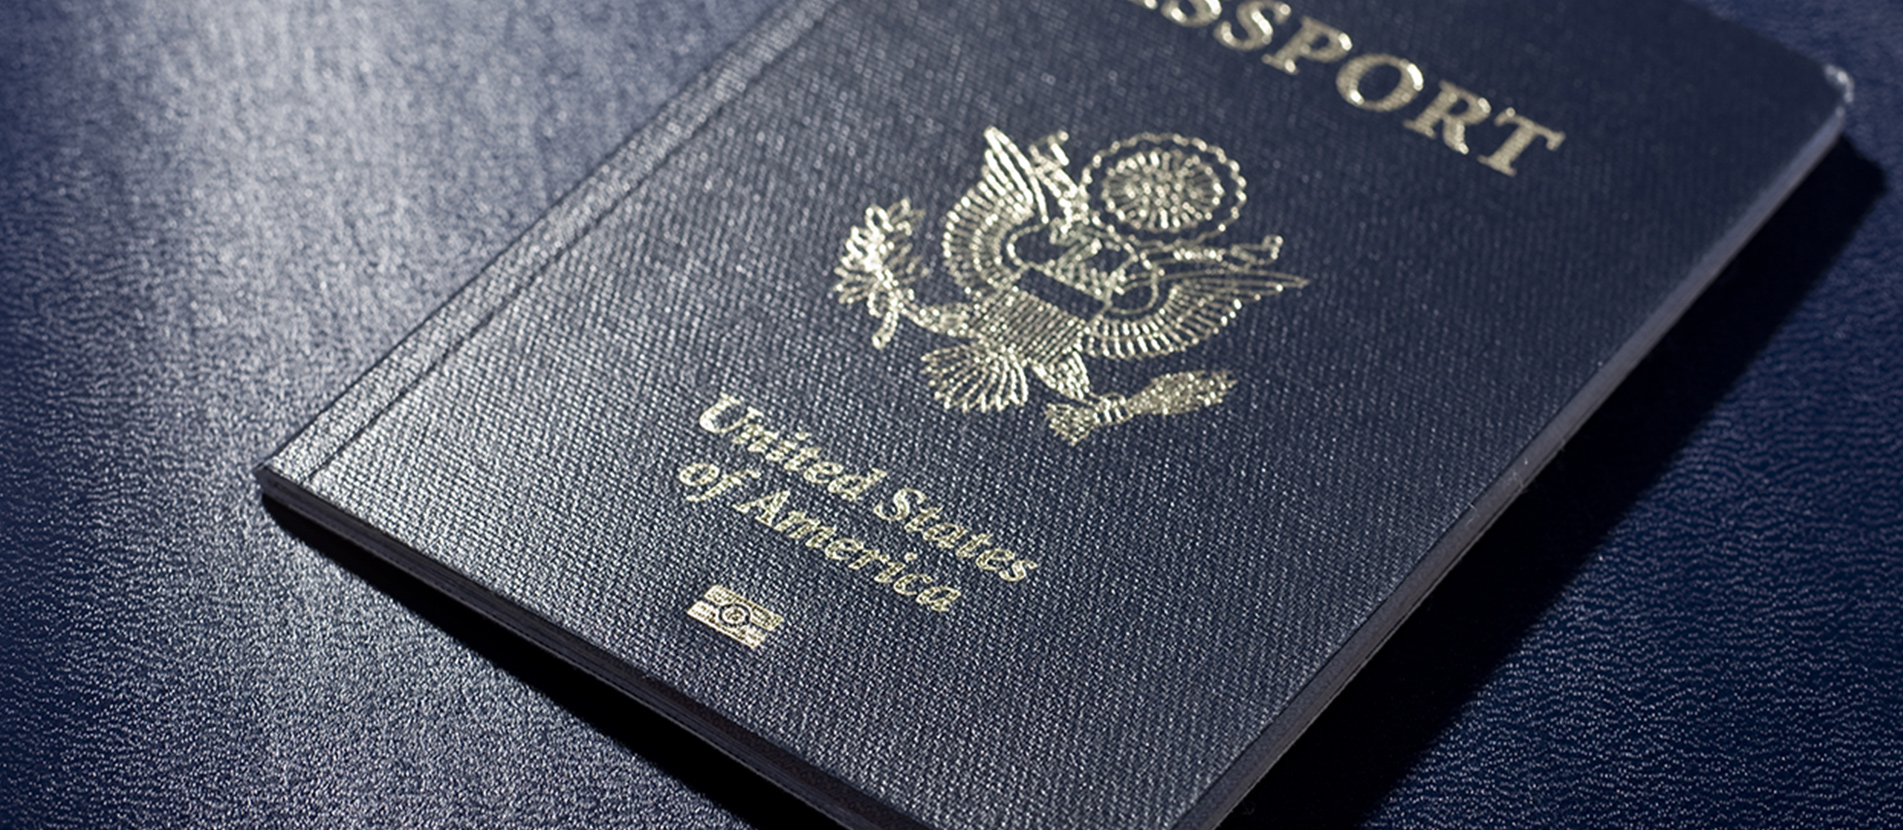 Passport Cover Cloth by Holliston, LLC - The United States of America